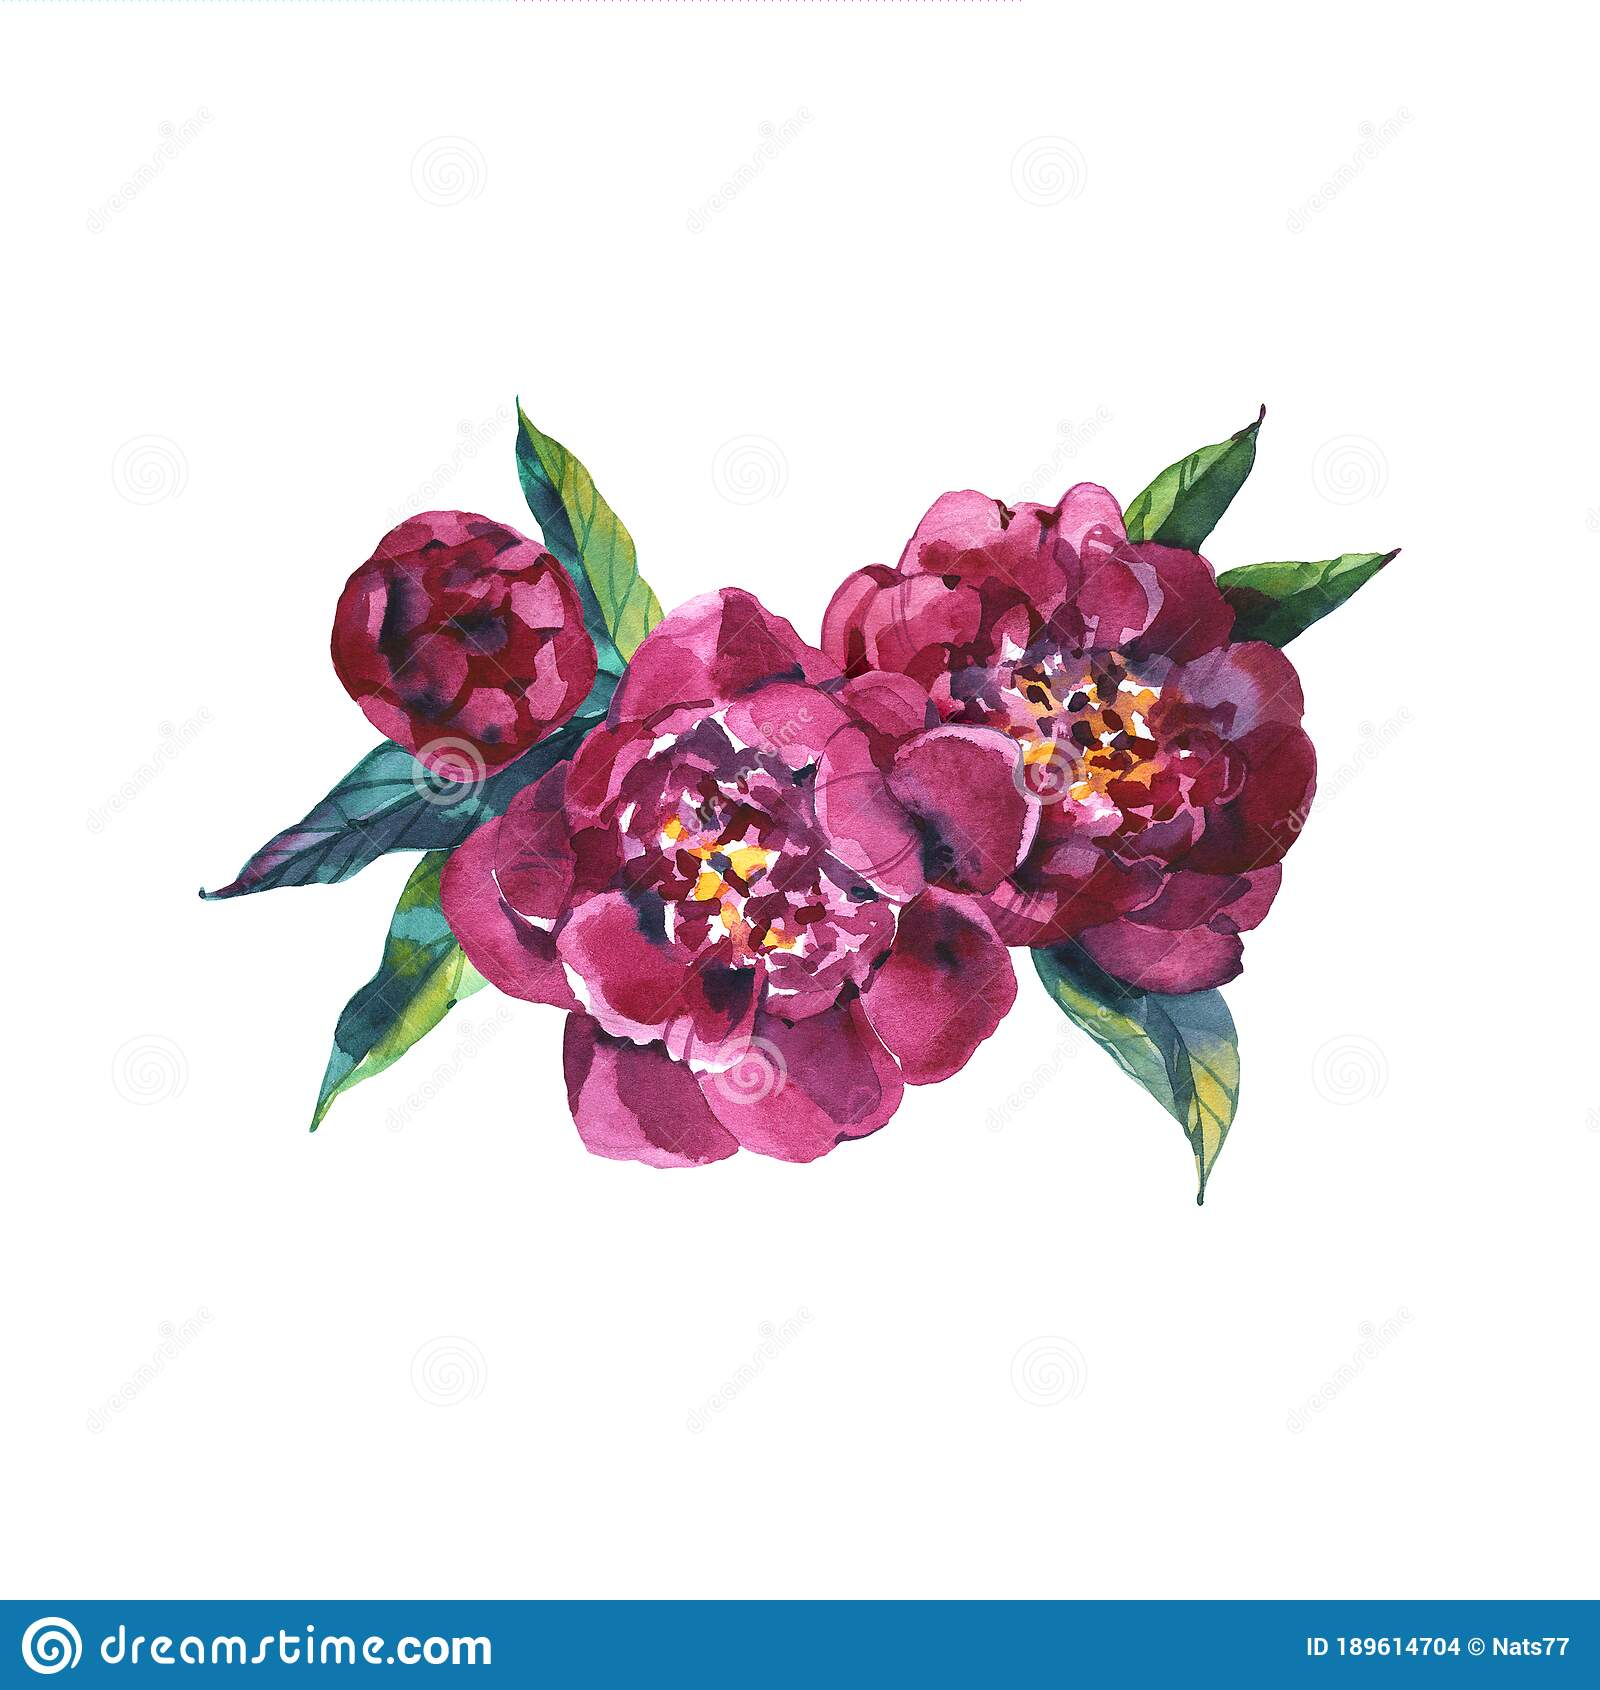 Watercolor Floral Bouquet Purple Burgundy Roses Peonies Fall Leaves And Flowers Isolated On White Background Stock Illustration Illustration Of Invitation Painted 189614704